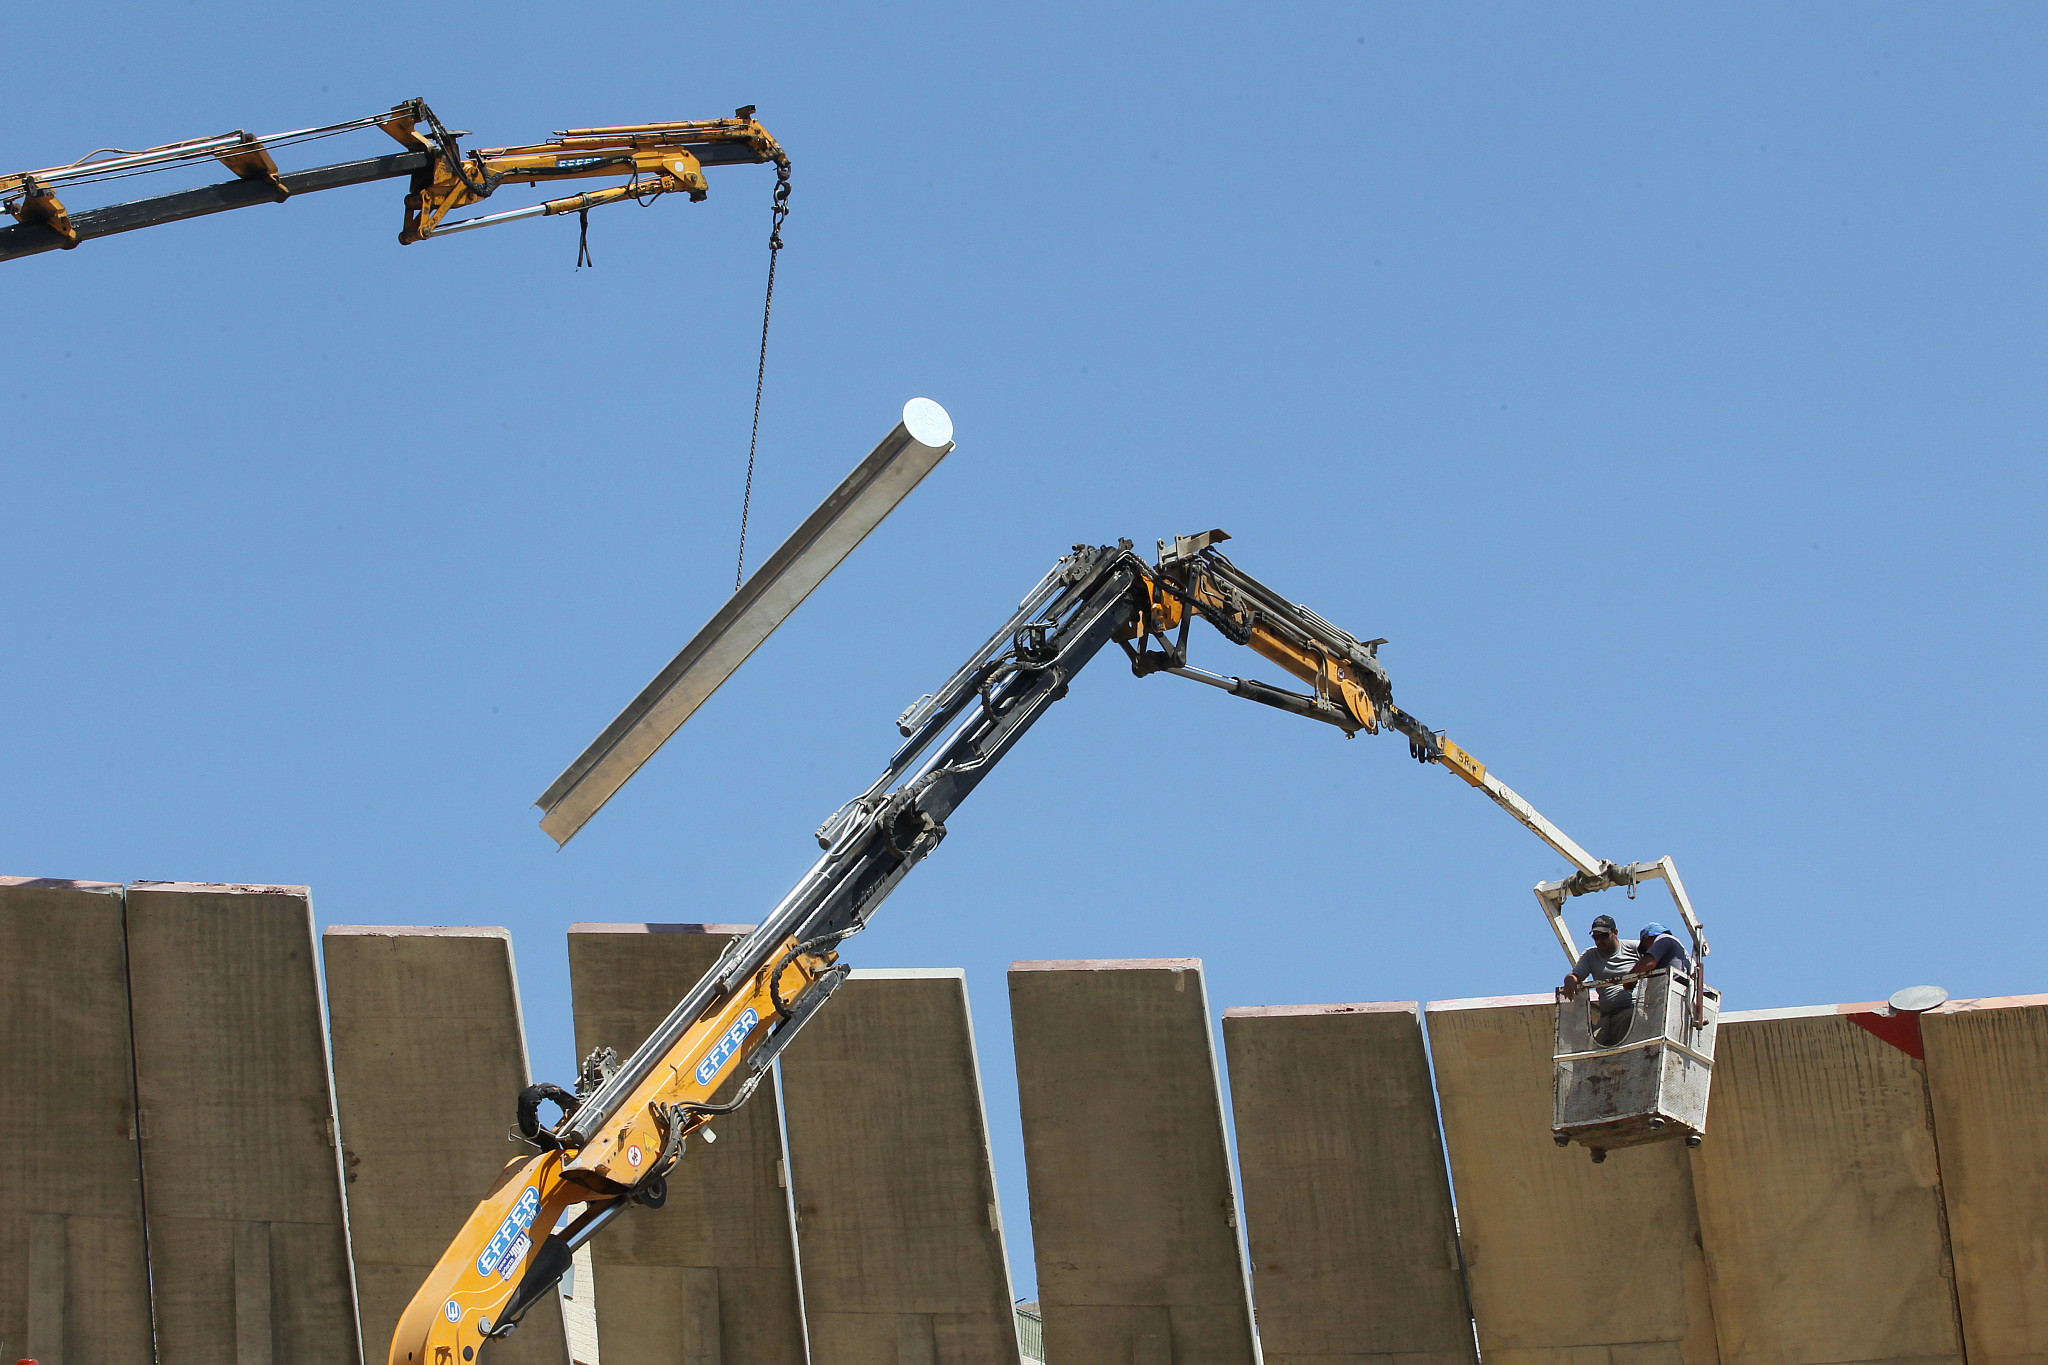 Palestinian construction workers work on part of the separation wall between the Gush Etzion settlement bloc and Jerusalem, July 7, 2011. (Nati Shohat/Flash90)